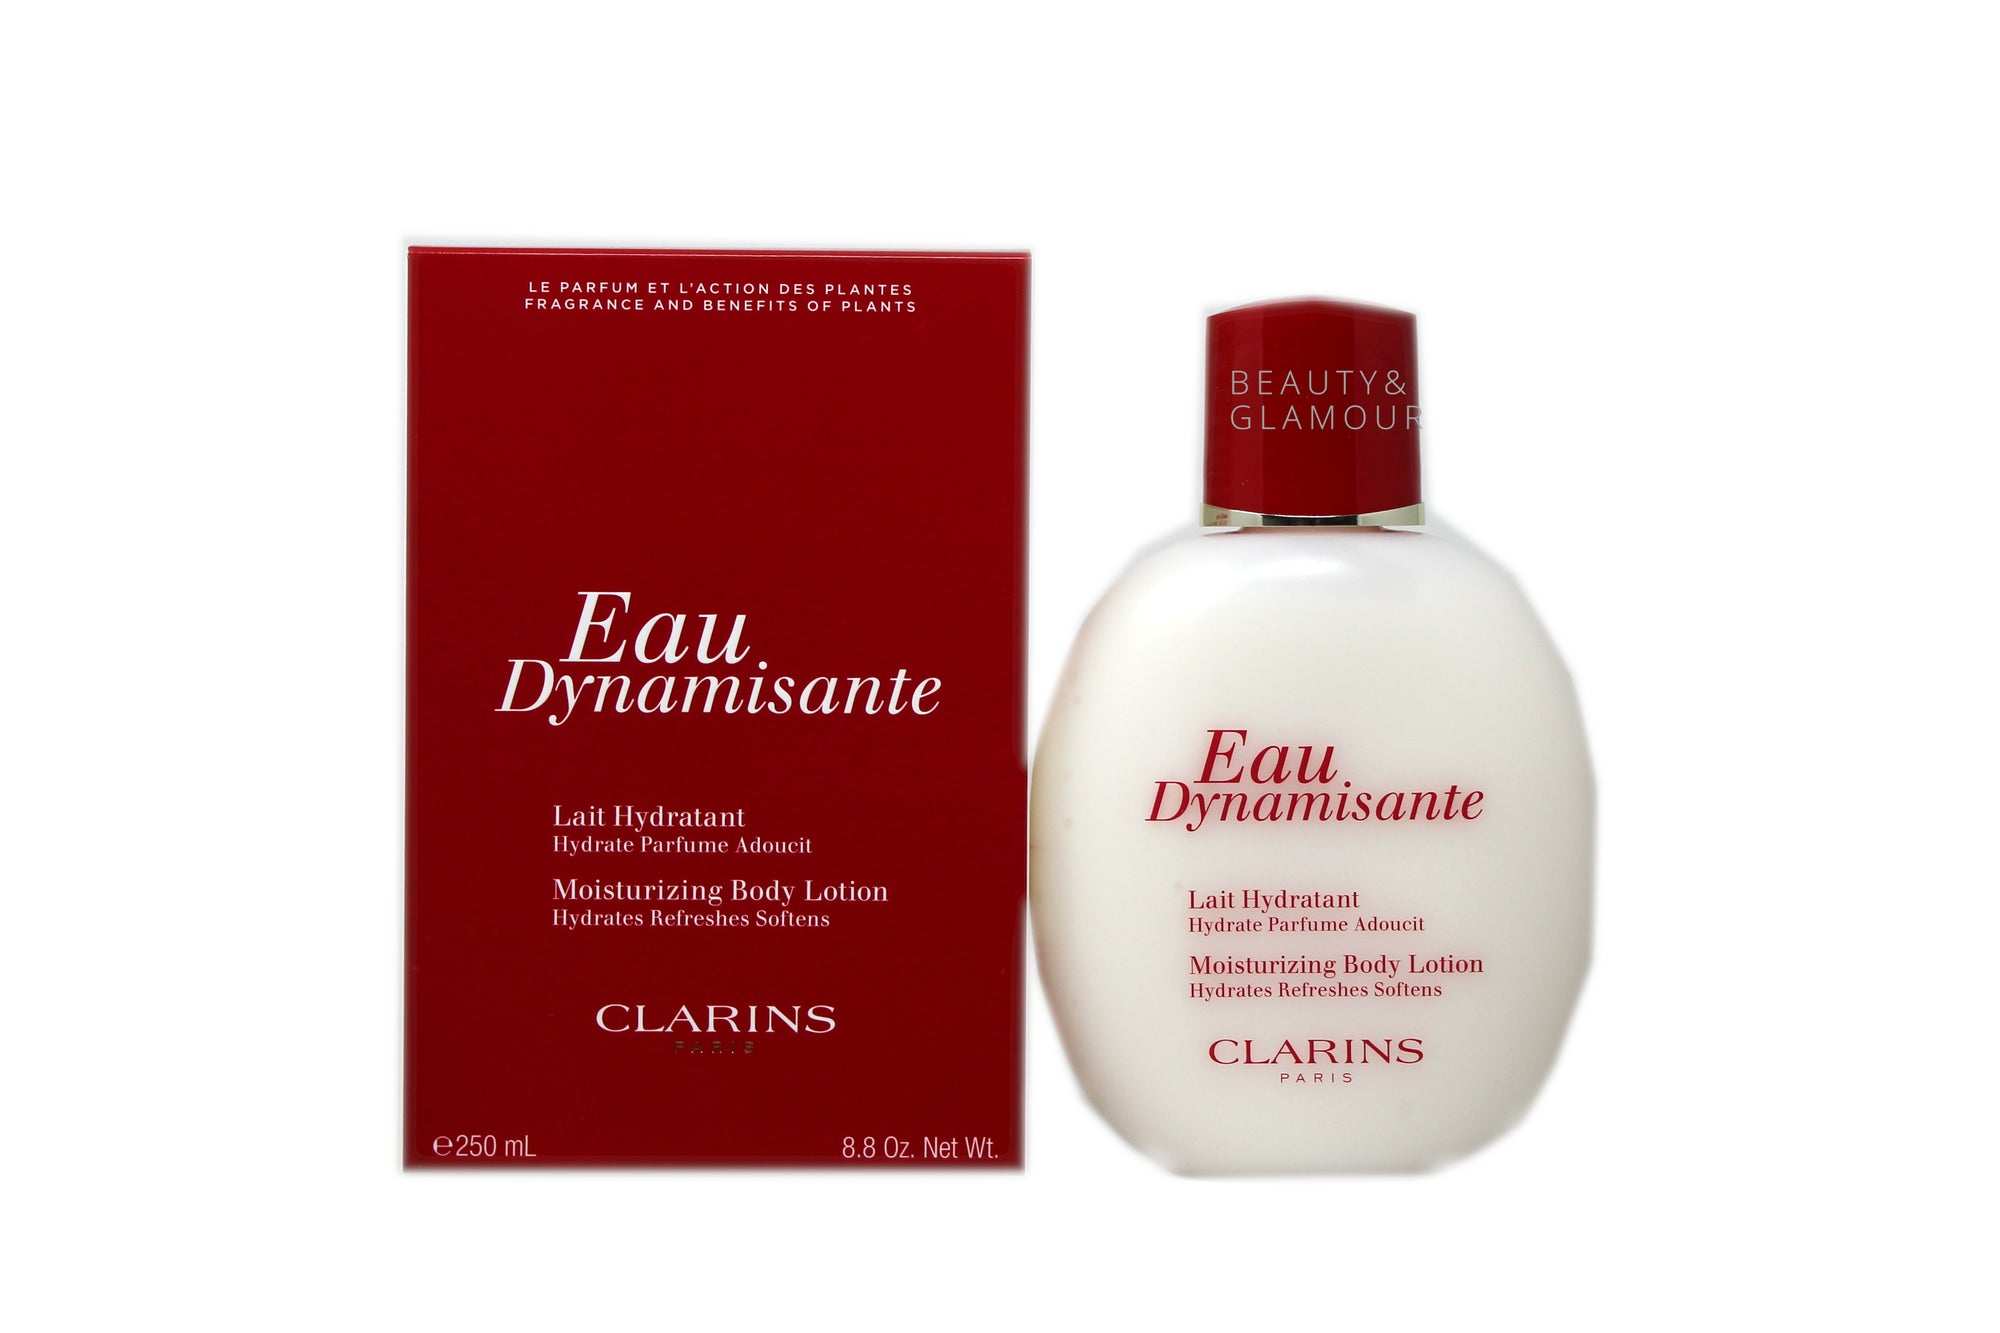 CLARINS EAU DYNAMISANTE MOISTURIZING BODY LOTION 250 ML/8.8 OZ.